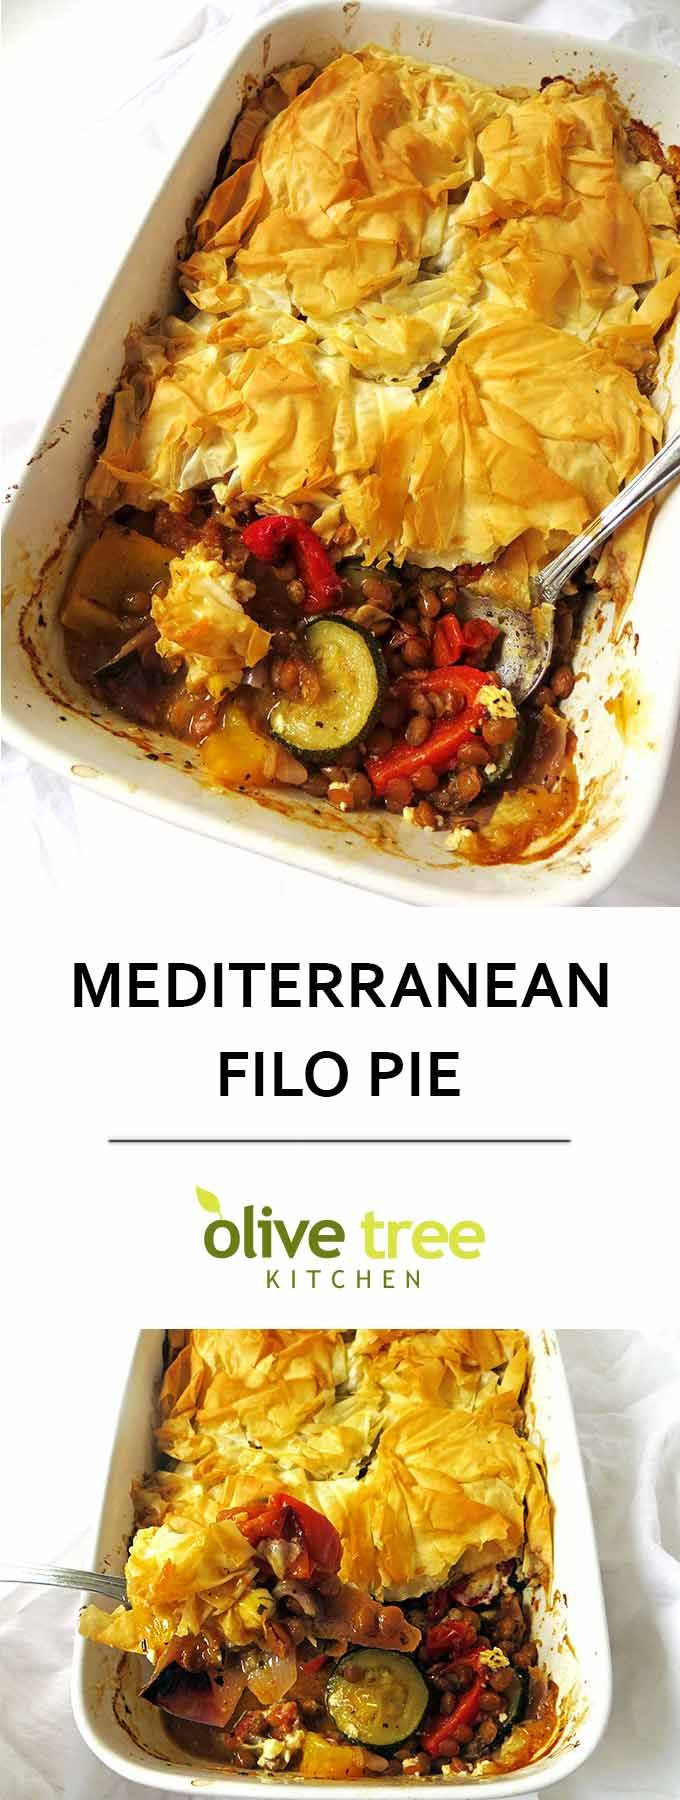 Light and crispy filo pastry surrounds a delicious medley of healthy roast vegetables, lentils and feta cheese in this Mediterranean Filo Pie!